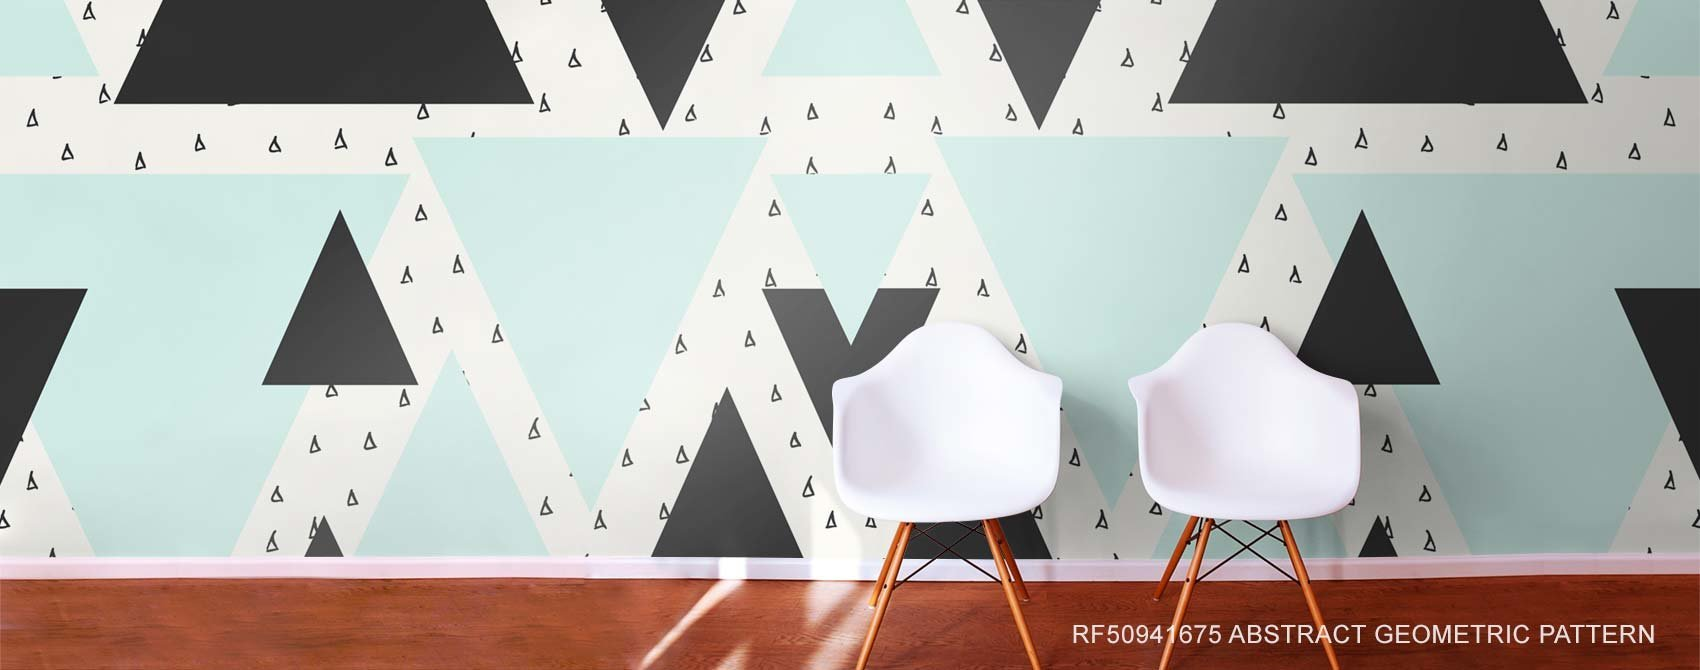 Abstract Geometric Pattern wallpaper mural